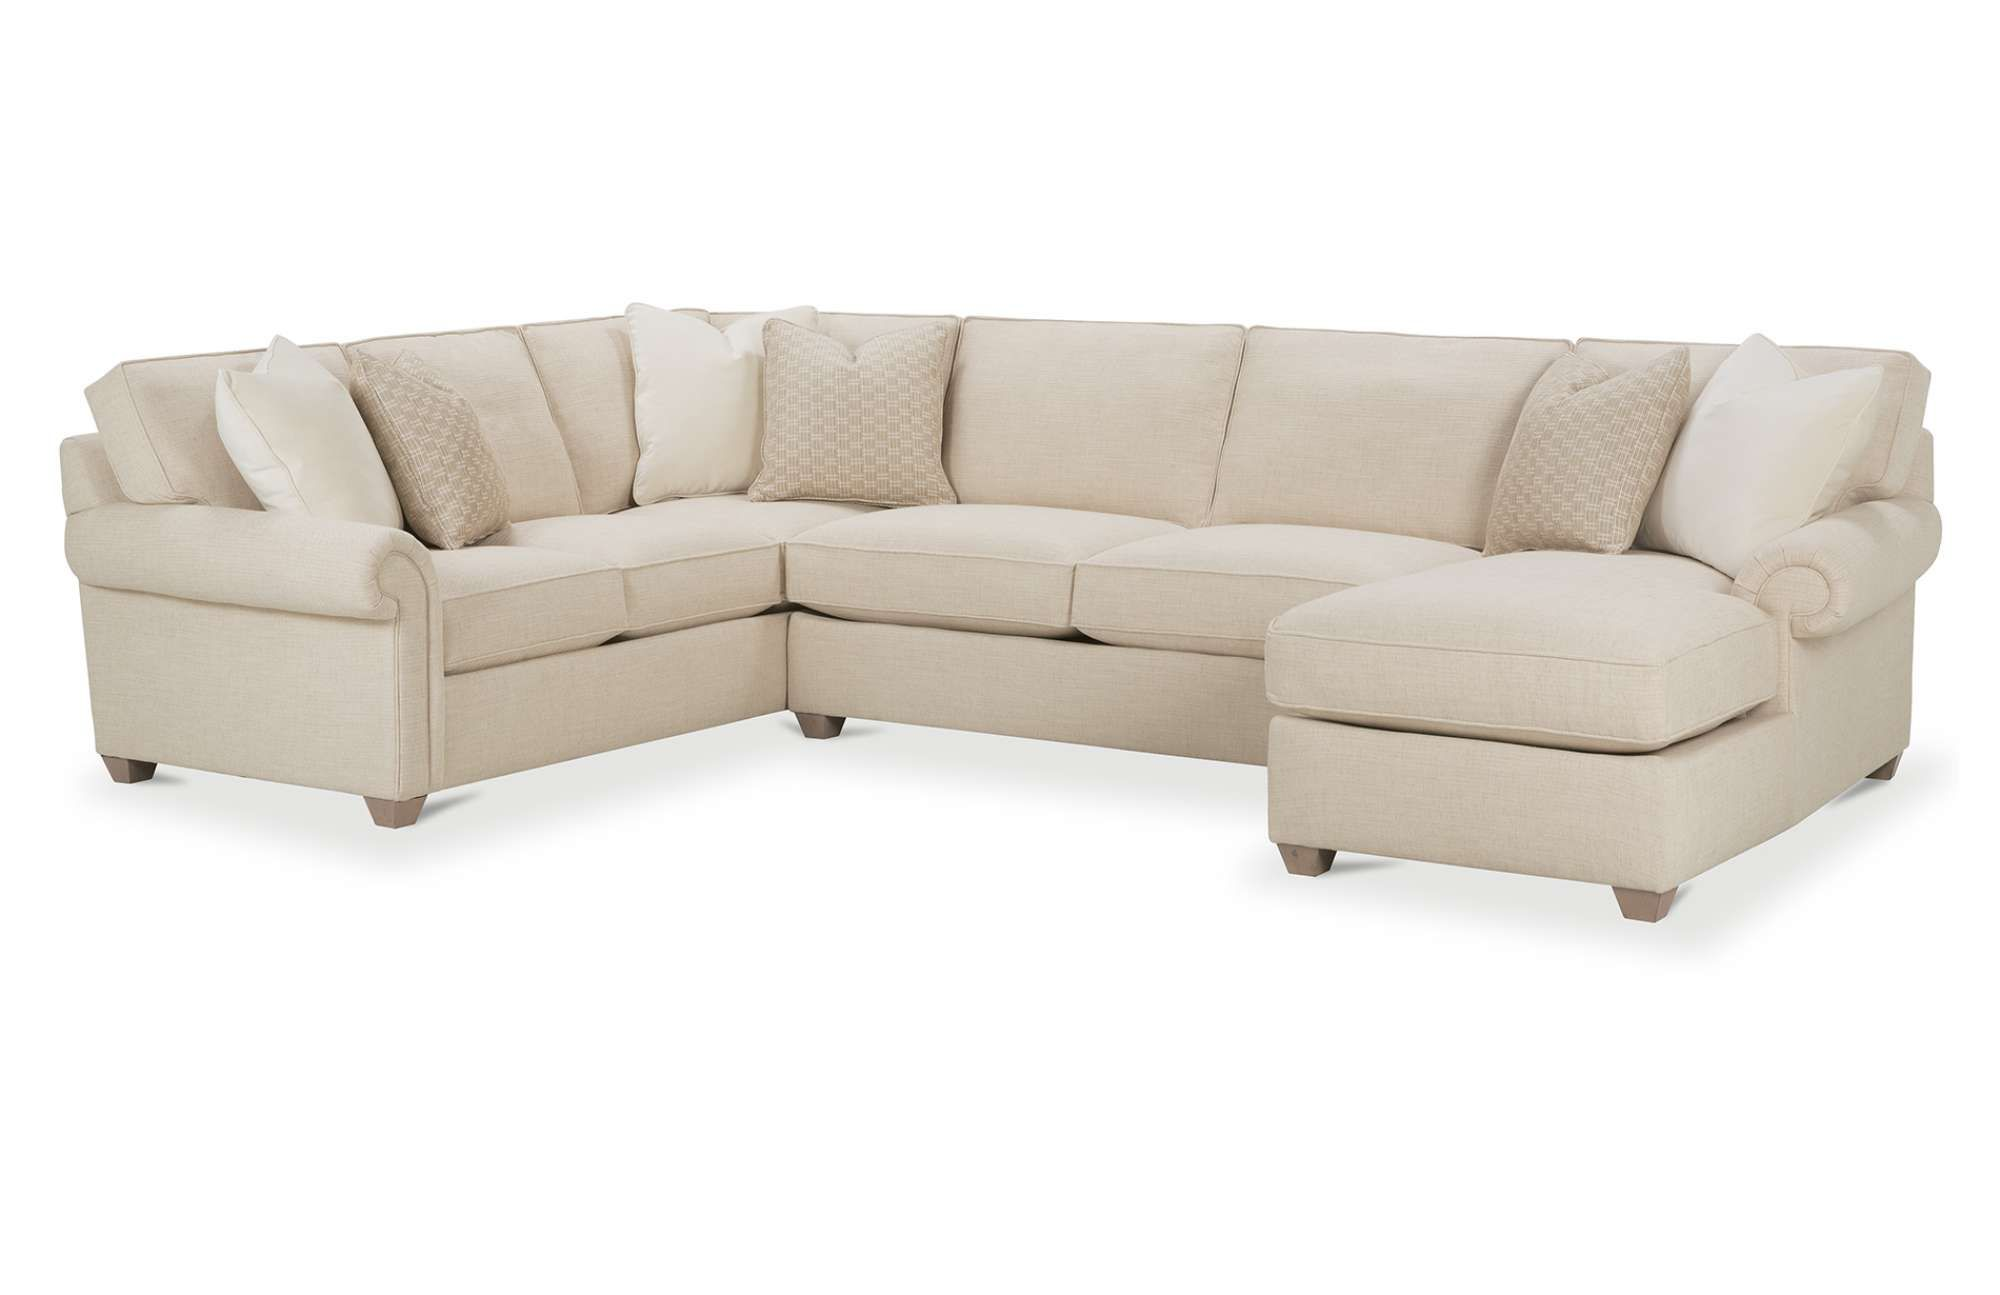 The Morgan Sectional Is The Perfect Cornerstone For Any Living